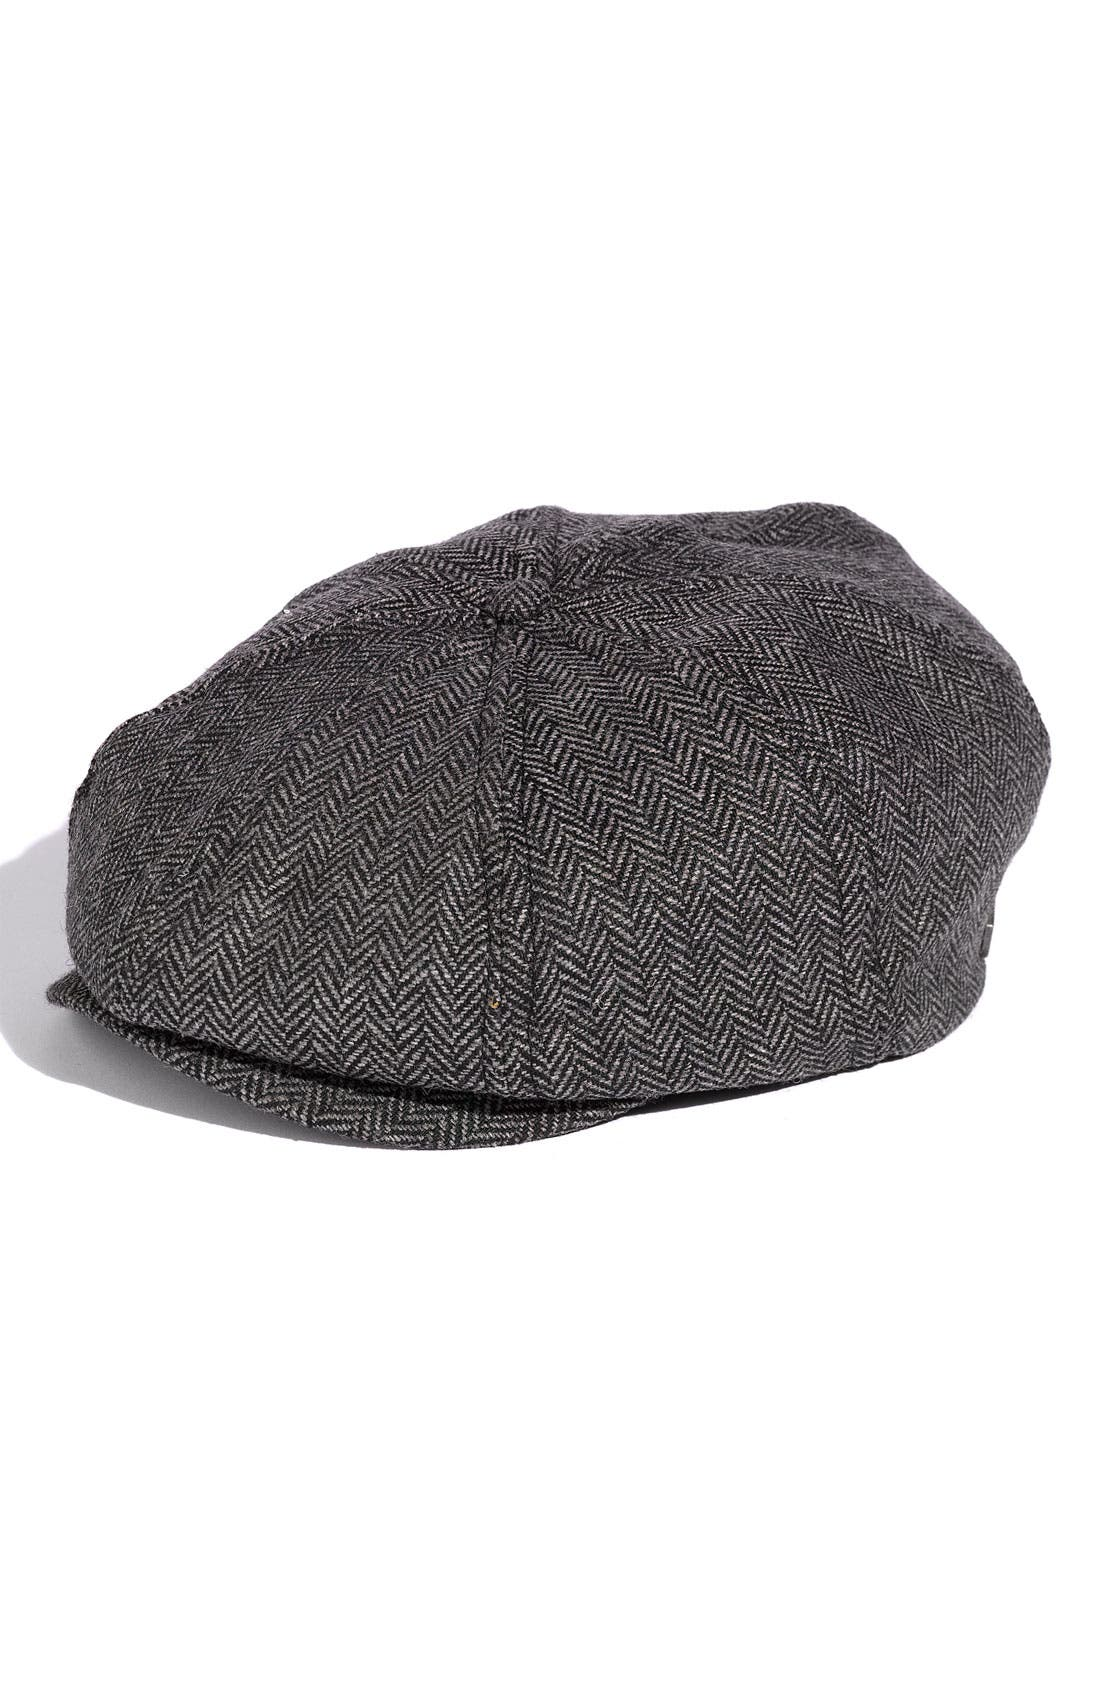 'Brood' Driving Cap,                             Main thumbnail 1, color,                             Grey/Black Herringbone